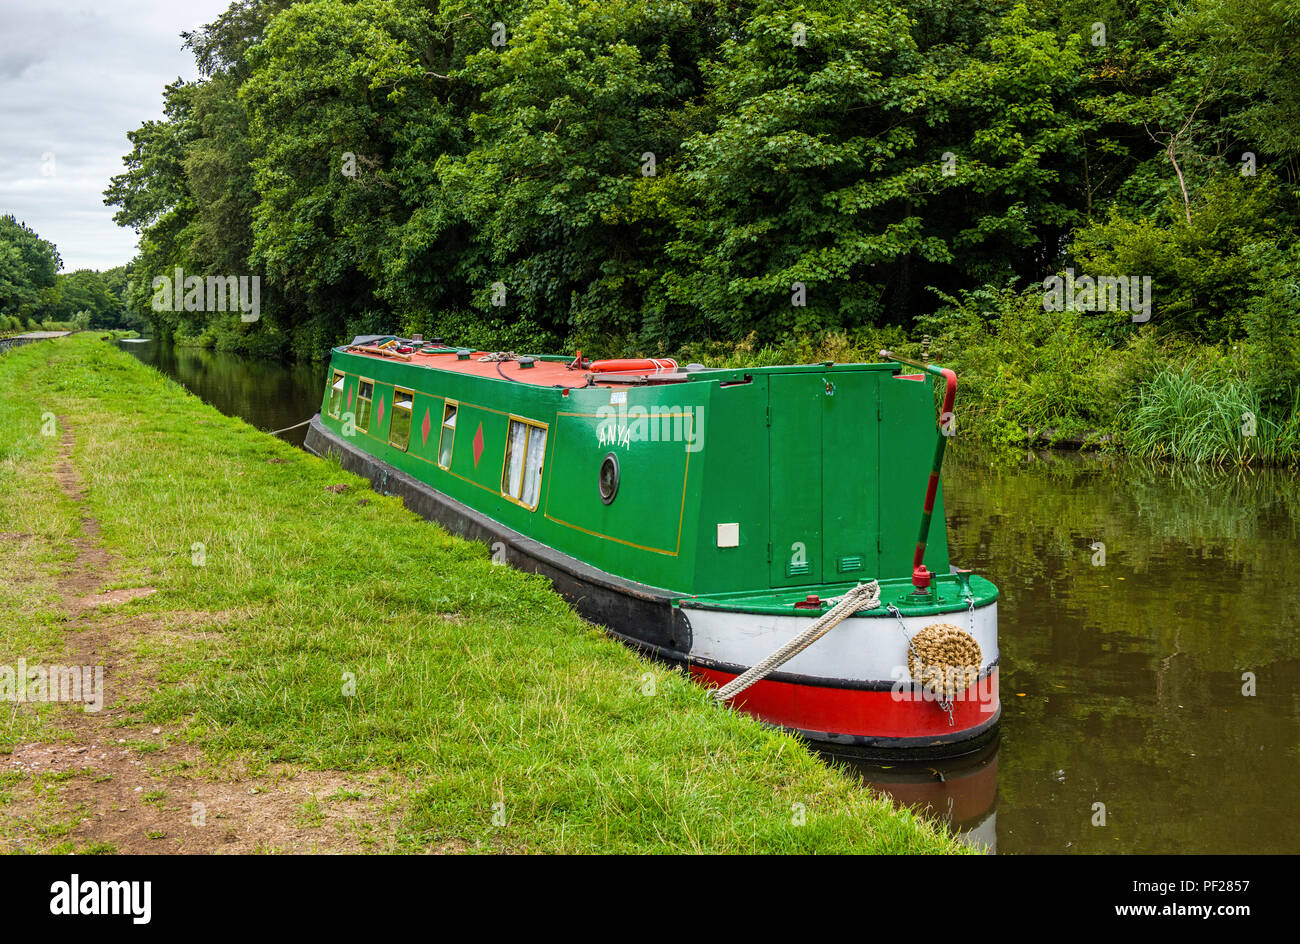 The Staffordshire and Worcestershire Canal near Penkridge Staffordshire with a Narrowboat moored up. Stock Photo